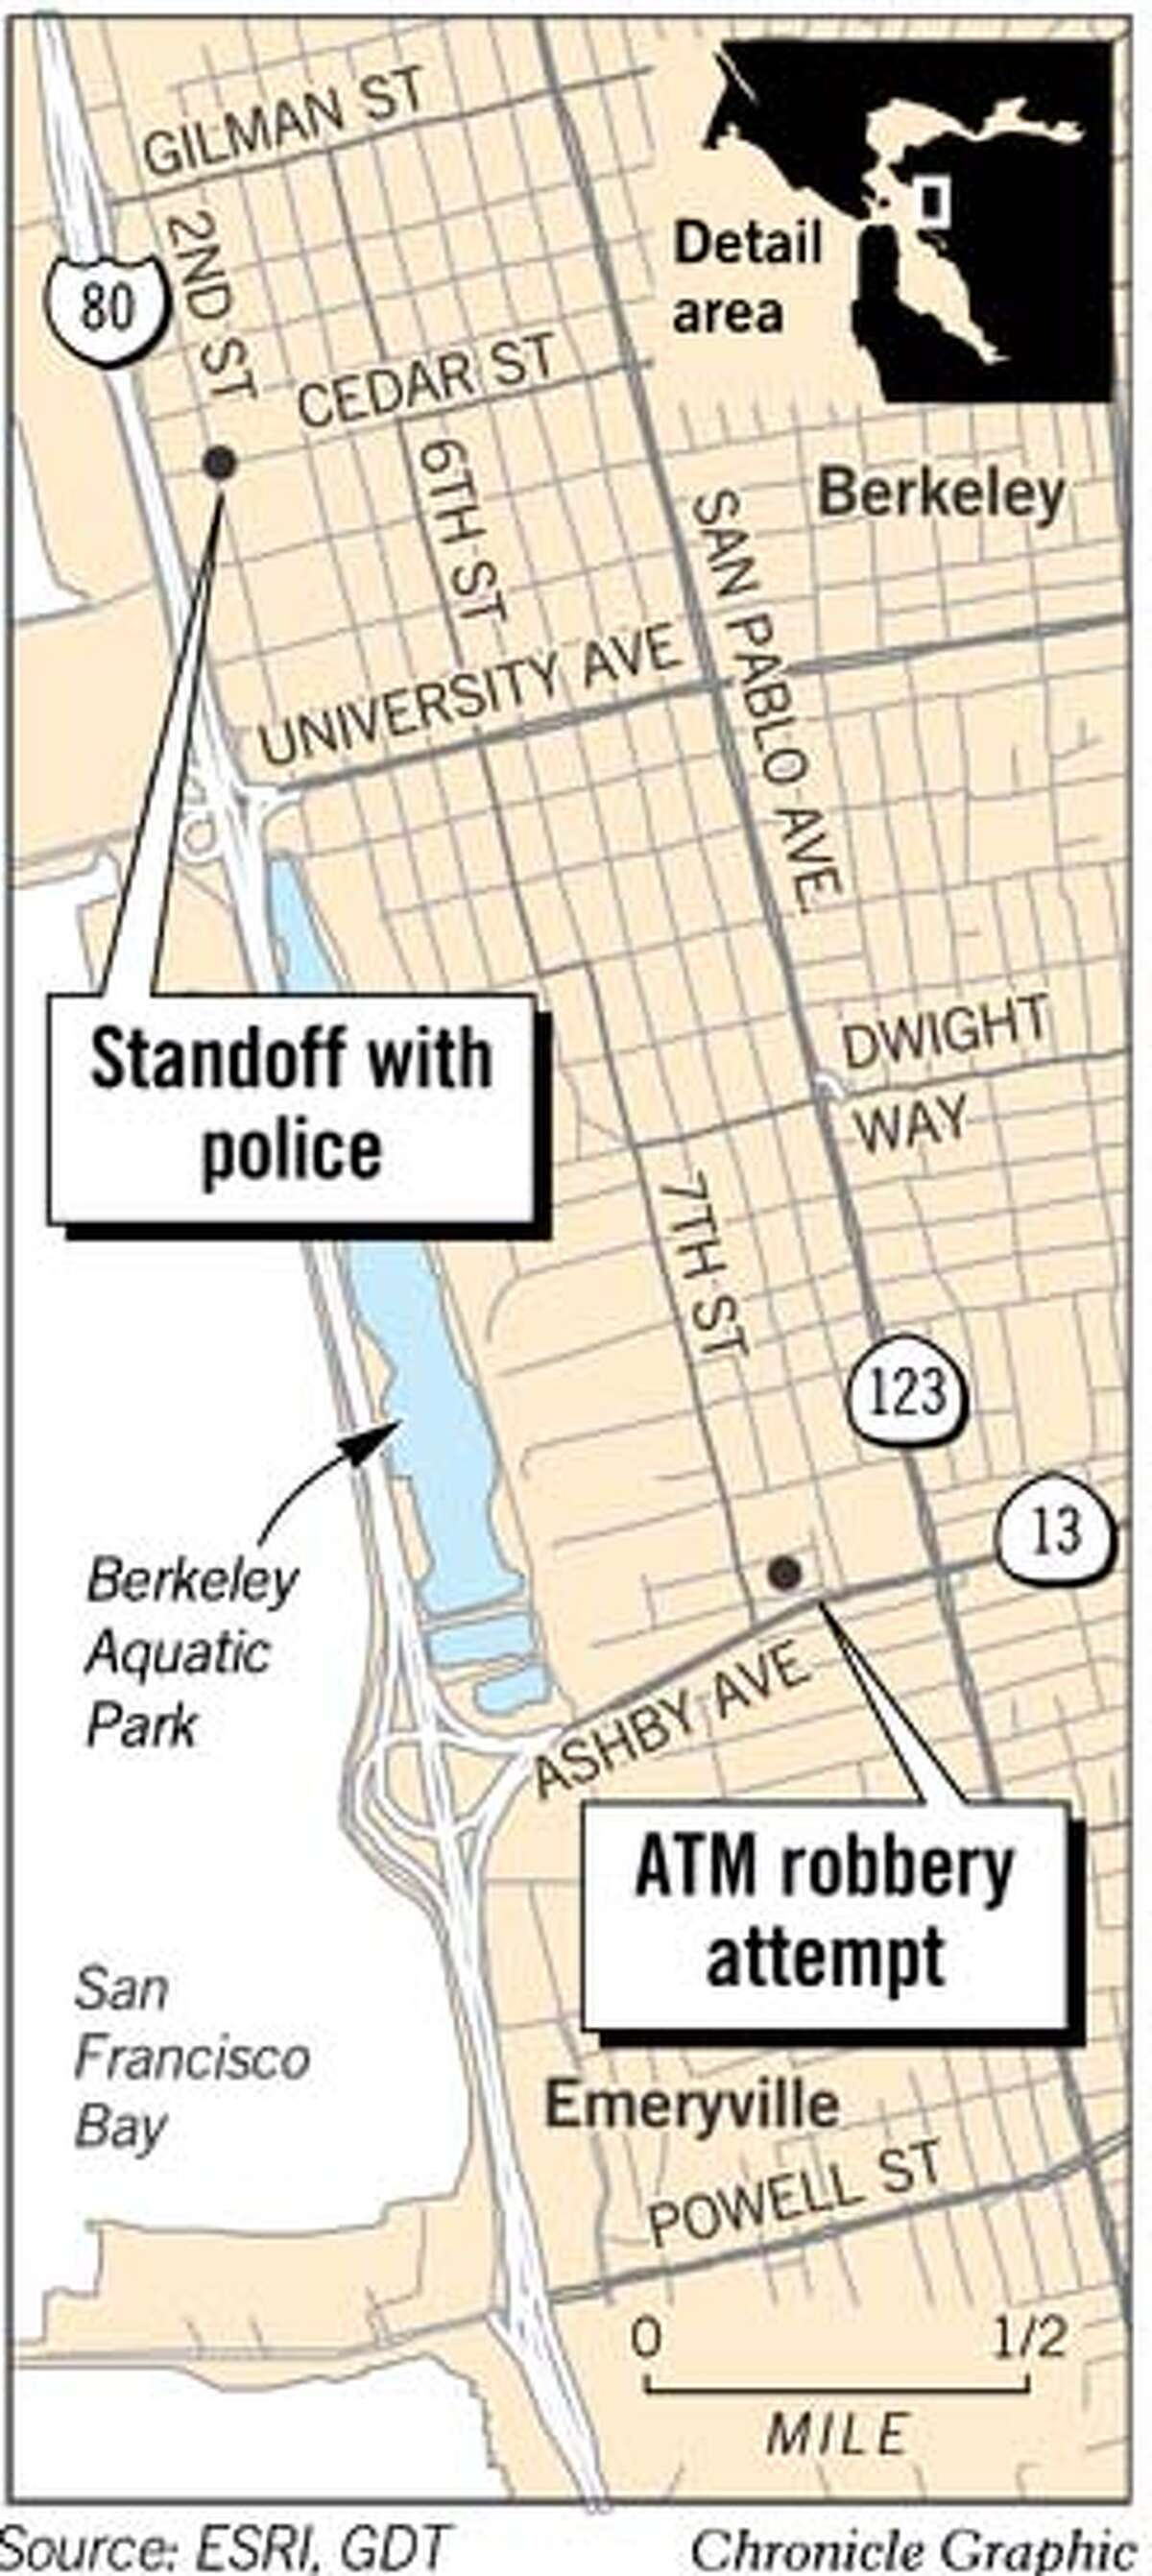 Two Violent Crimes in Berkeley. Chronicle Graphic